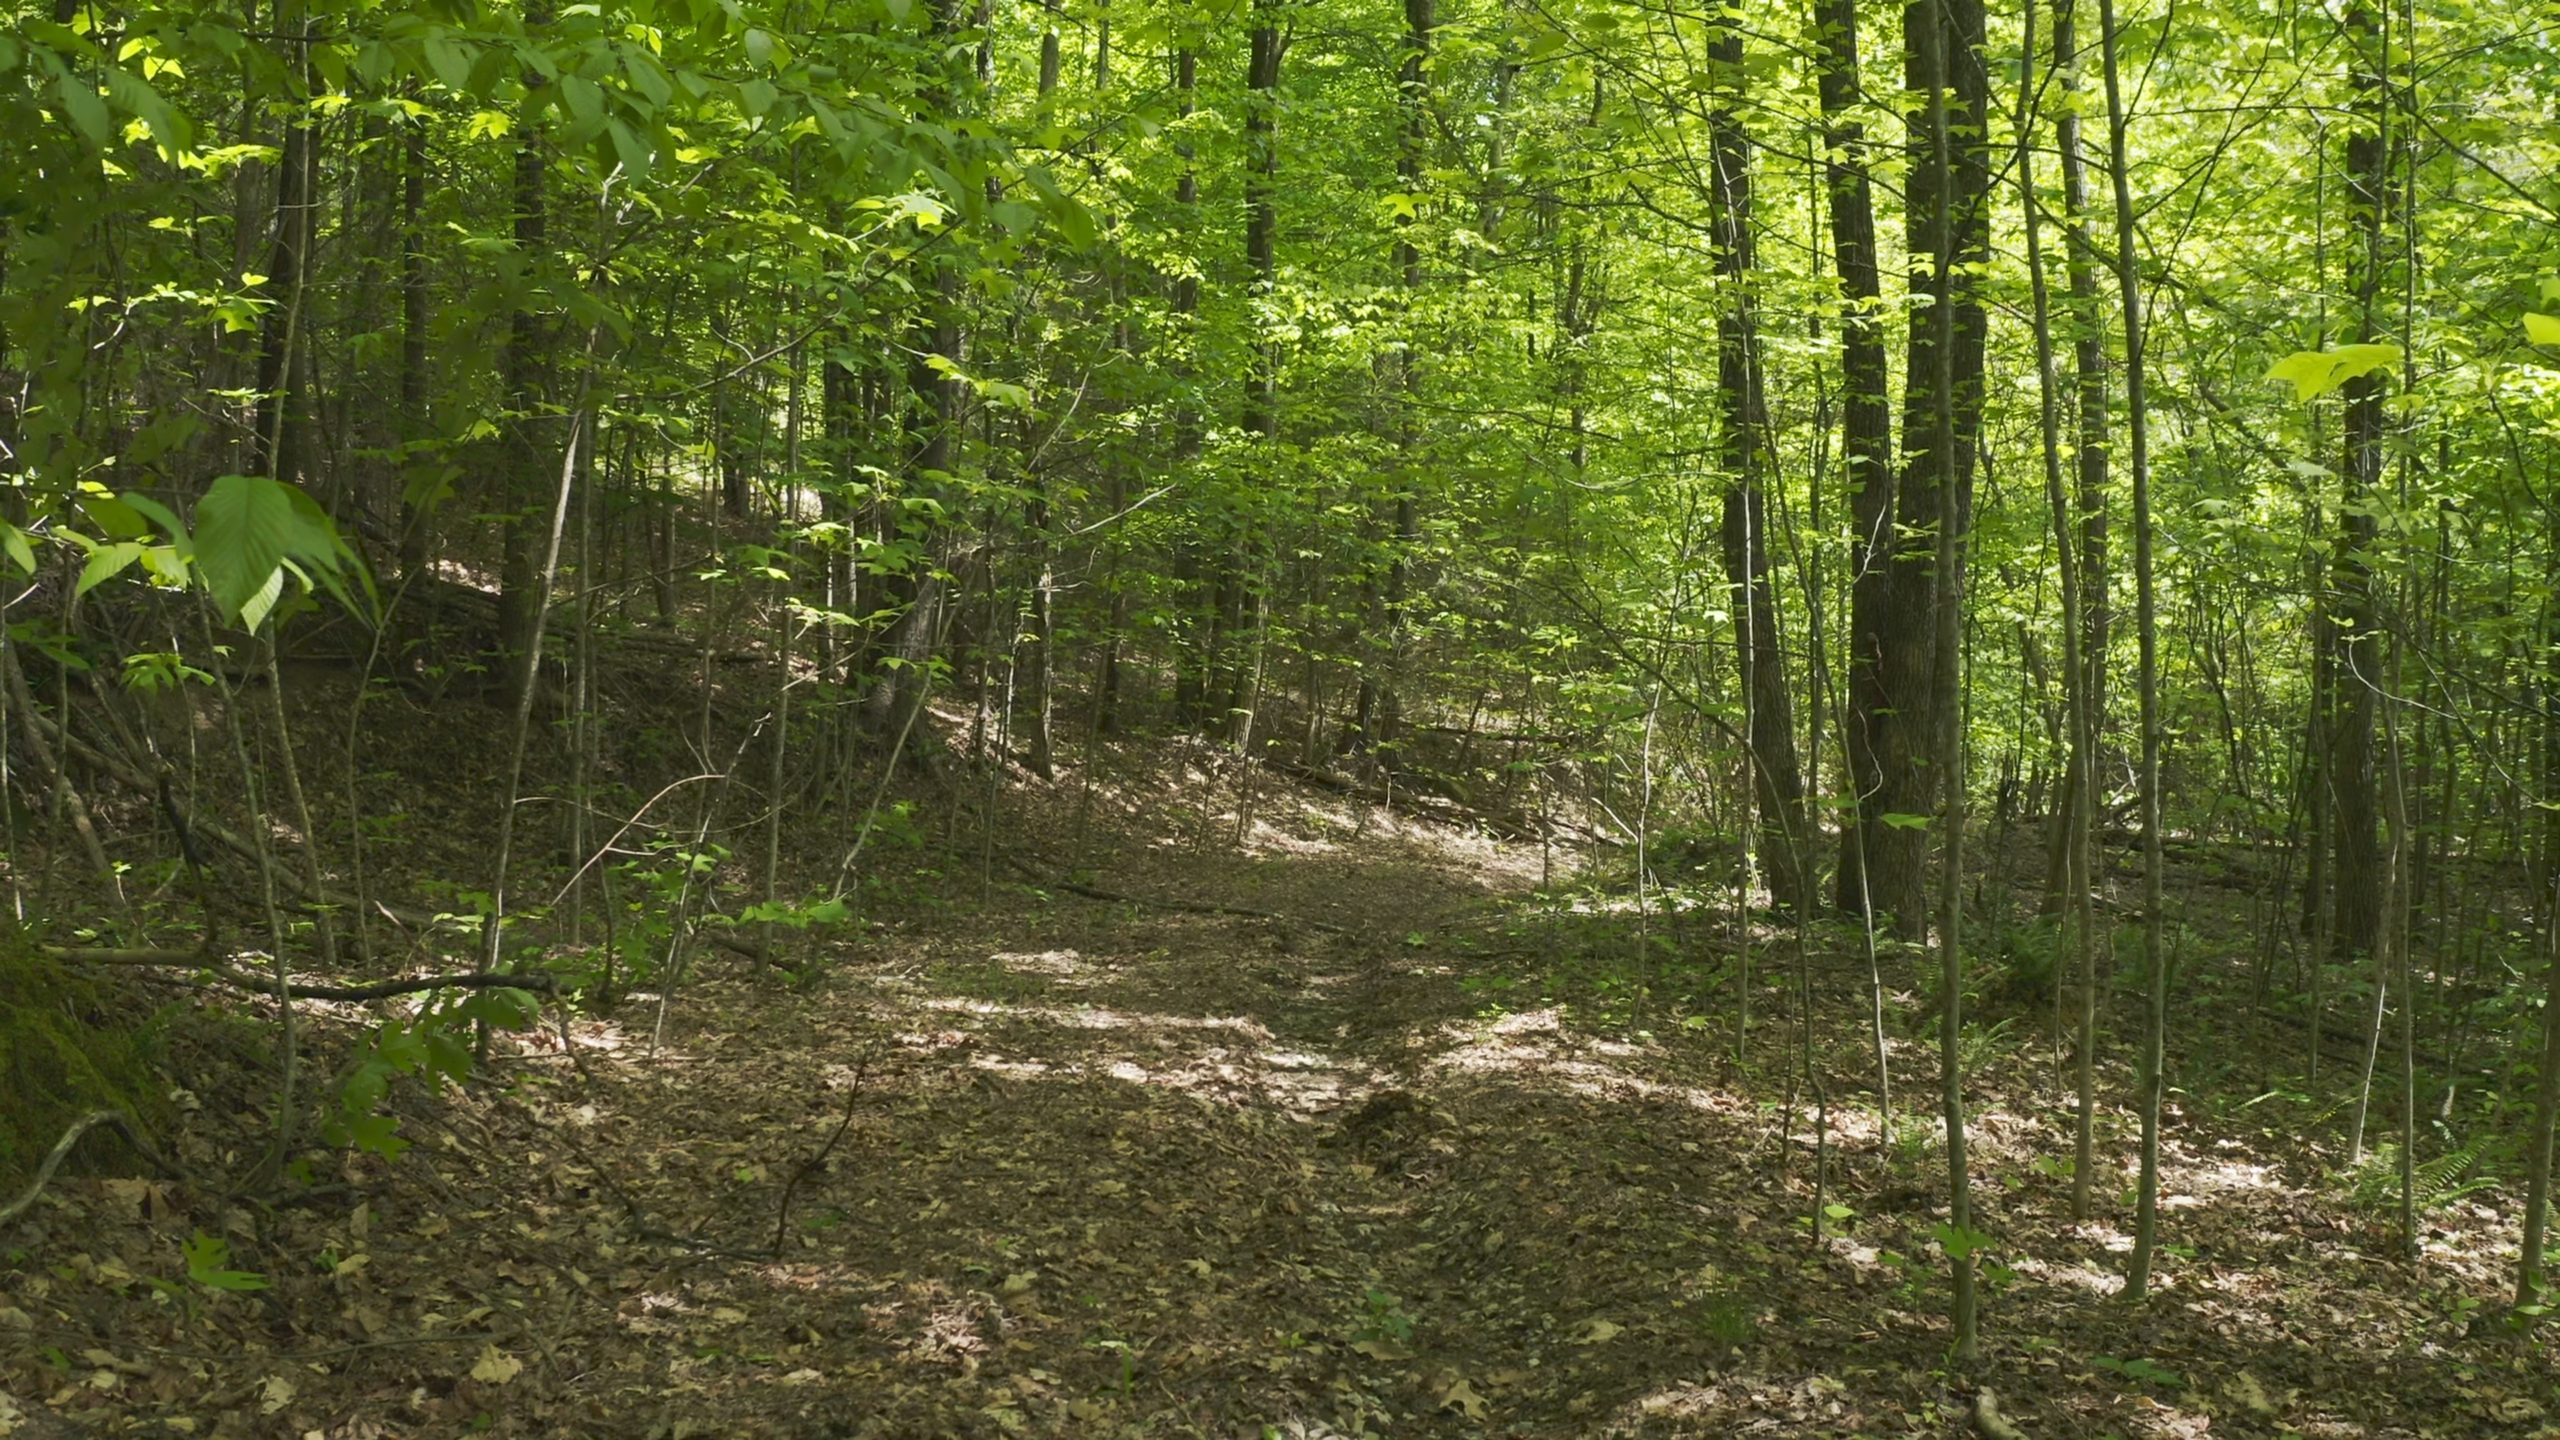 East Tennessee Unrestricted Wooded Land For Sale